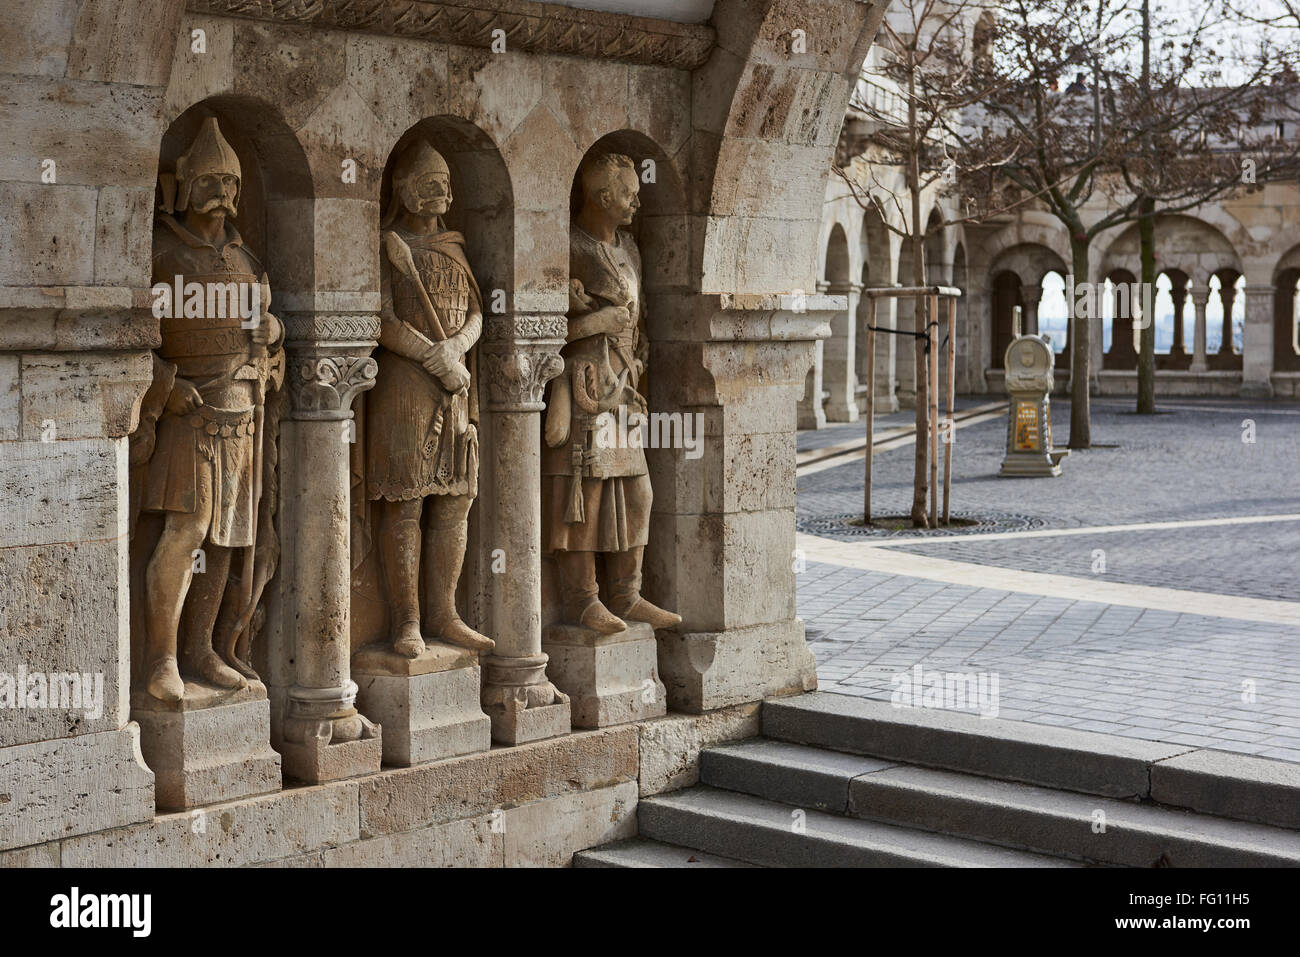 BUDAPEST, HUNGARY - FEBRUARY 02: Stone soldiers in one of the arches at Fisherman's Bastion, in the Old Town district. Stock Photo